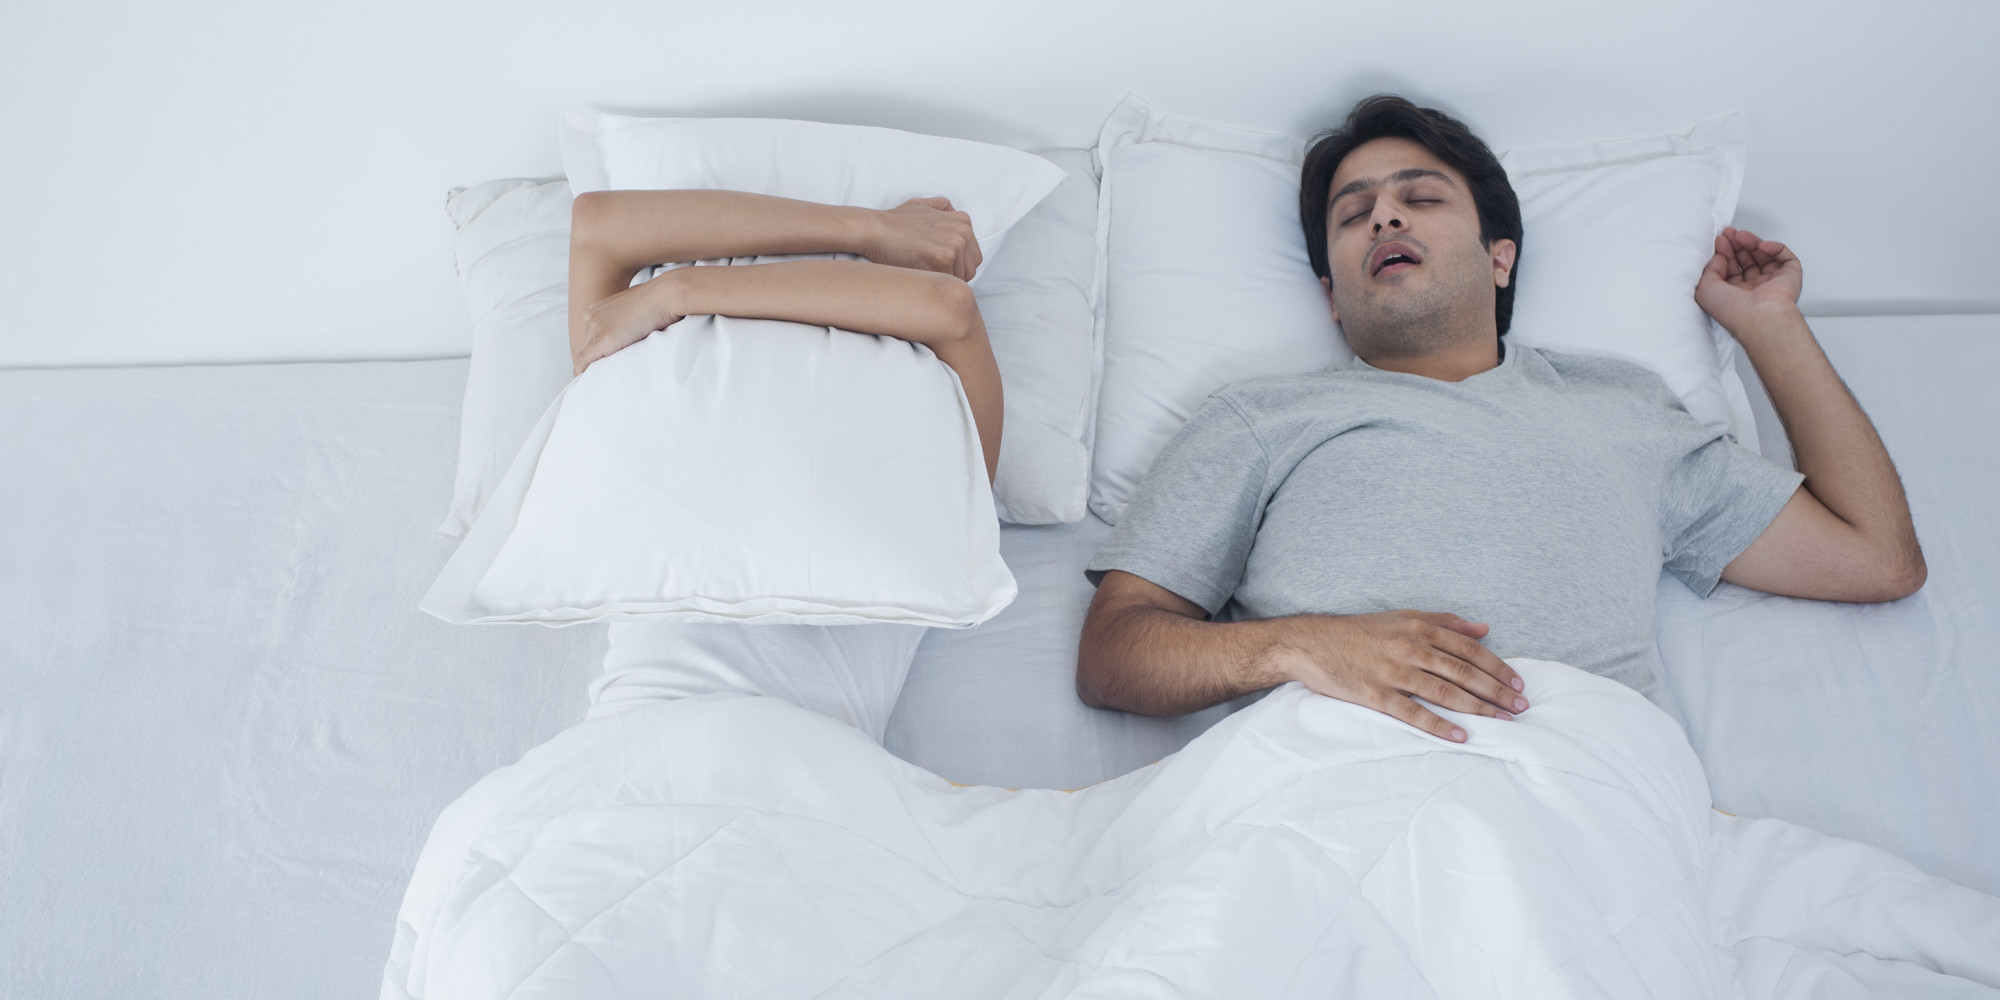 Snoring: Causes, Remedies, Prevention, and More